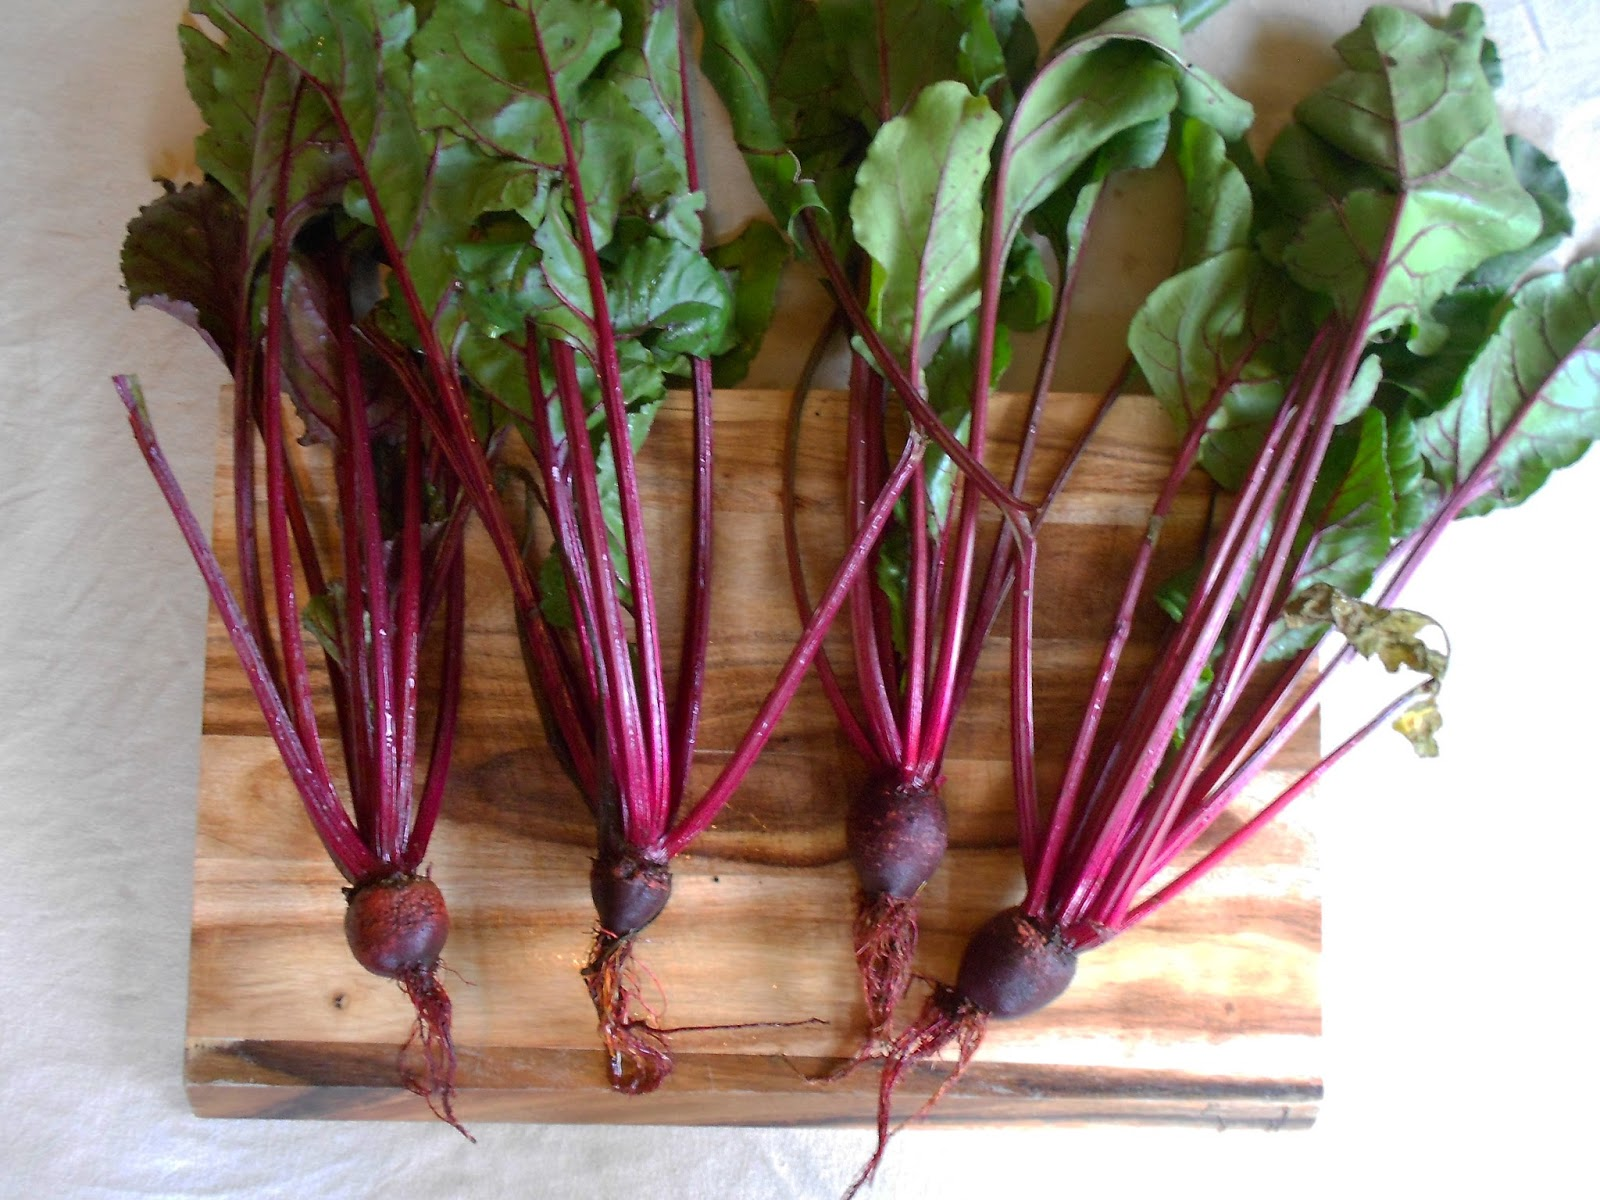 How to cook beetroot leaves